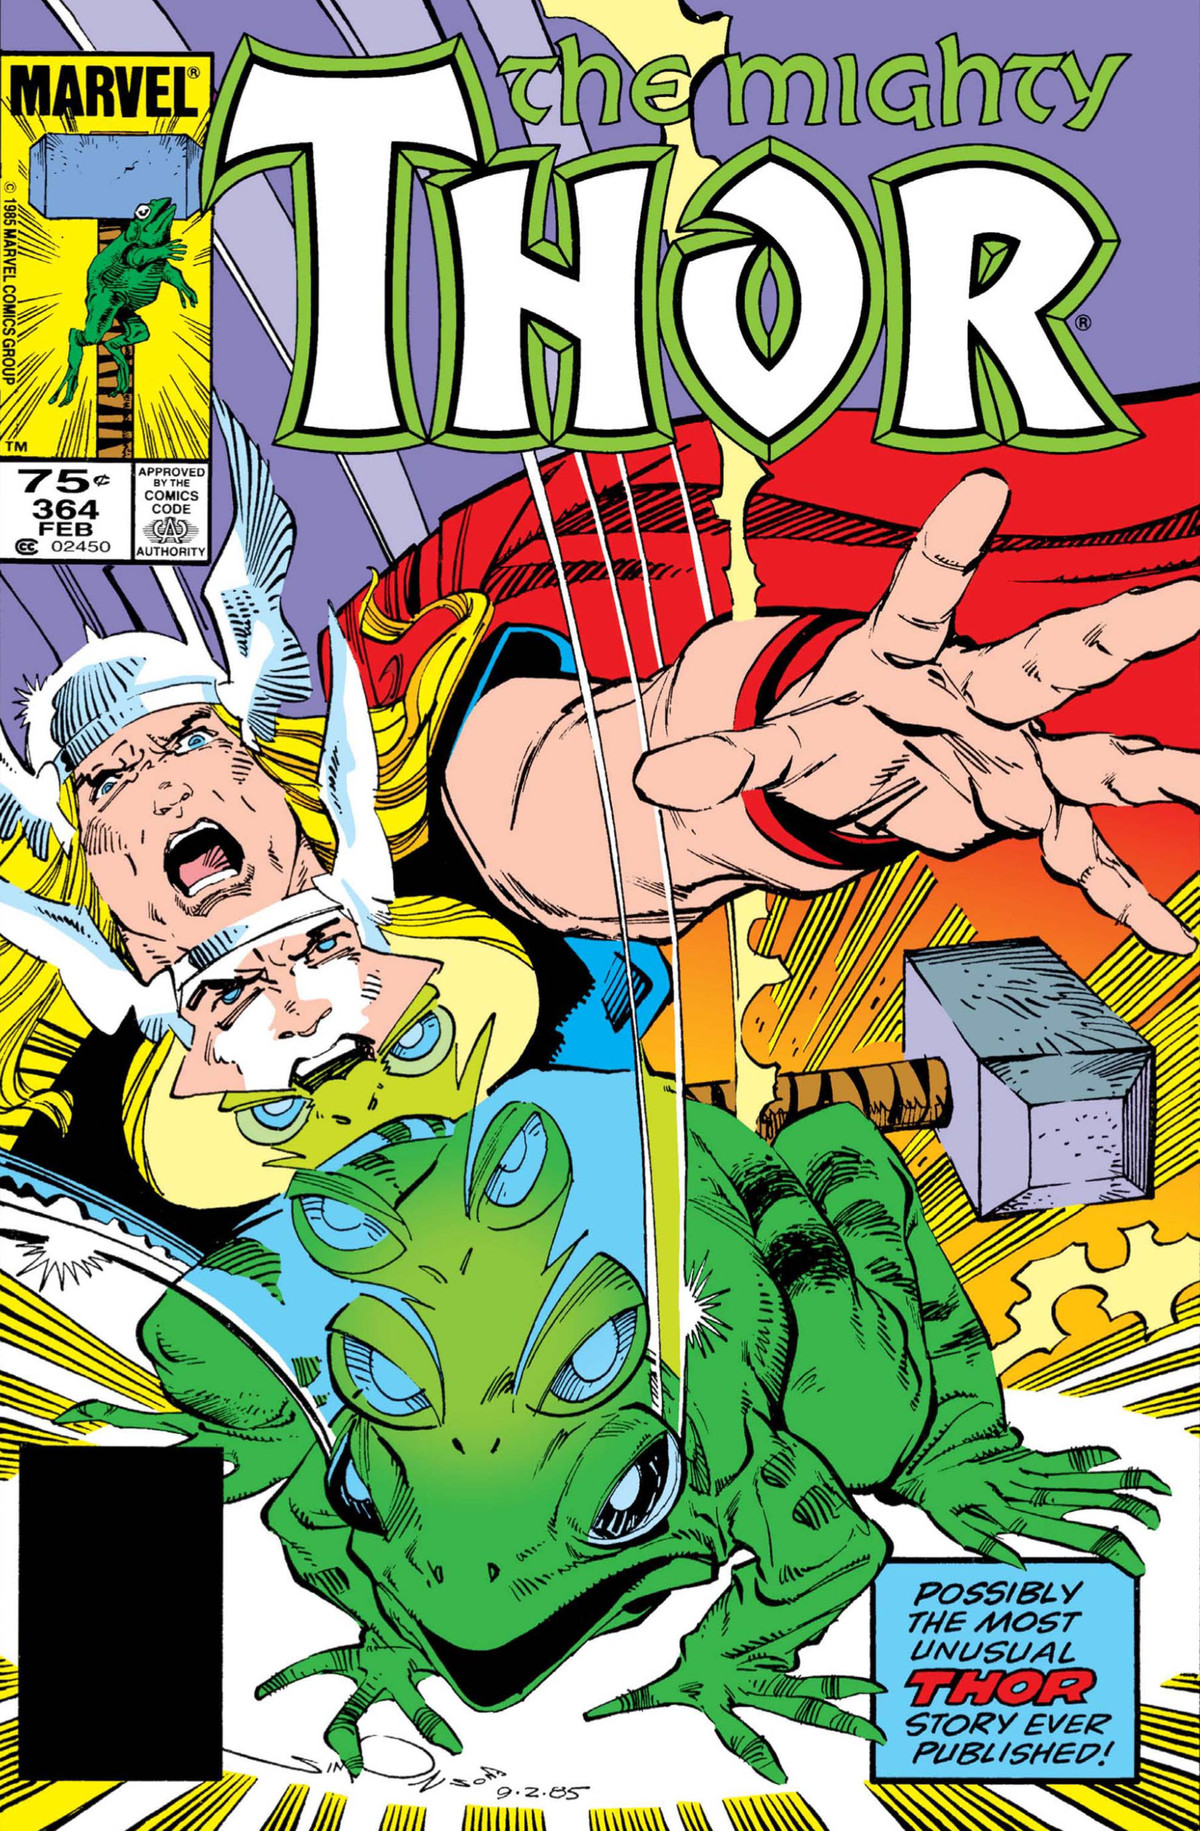 Thor drops his hammer in alarm as he transforms into a frog on the cover of Thor #364, Marvel Comics (1986).